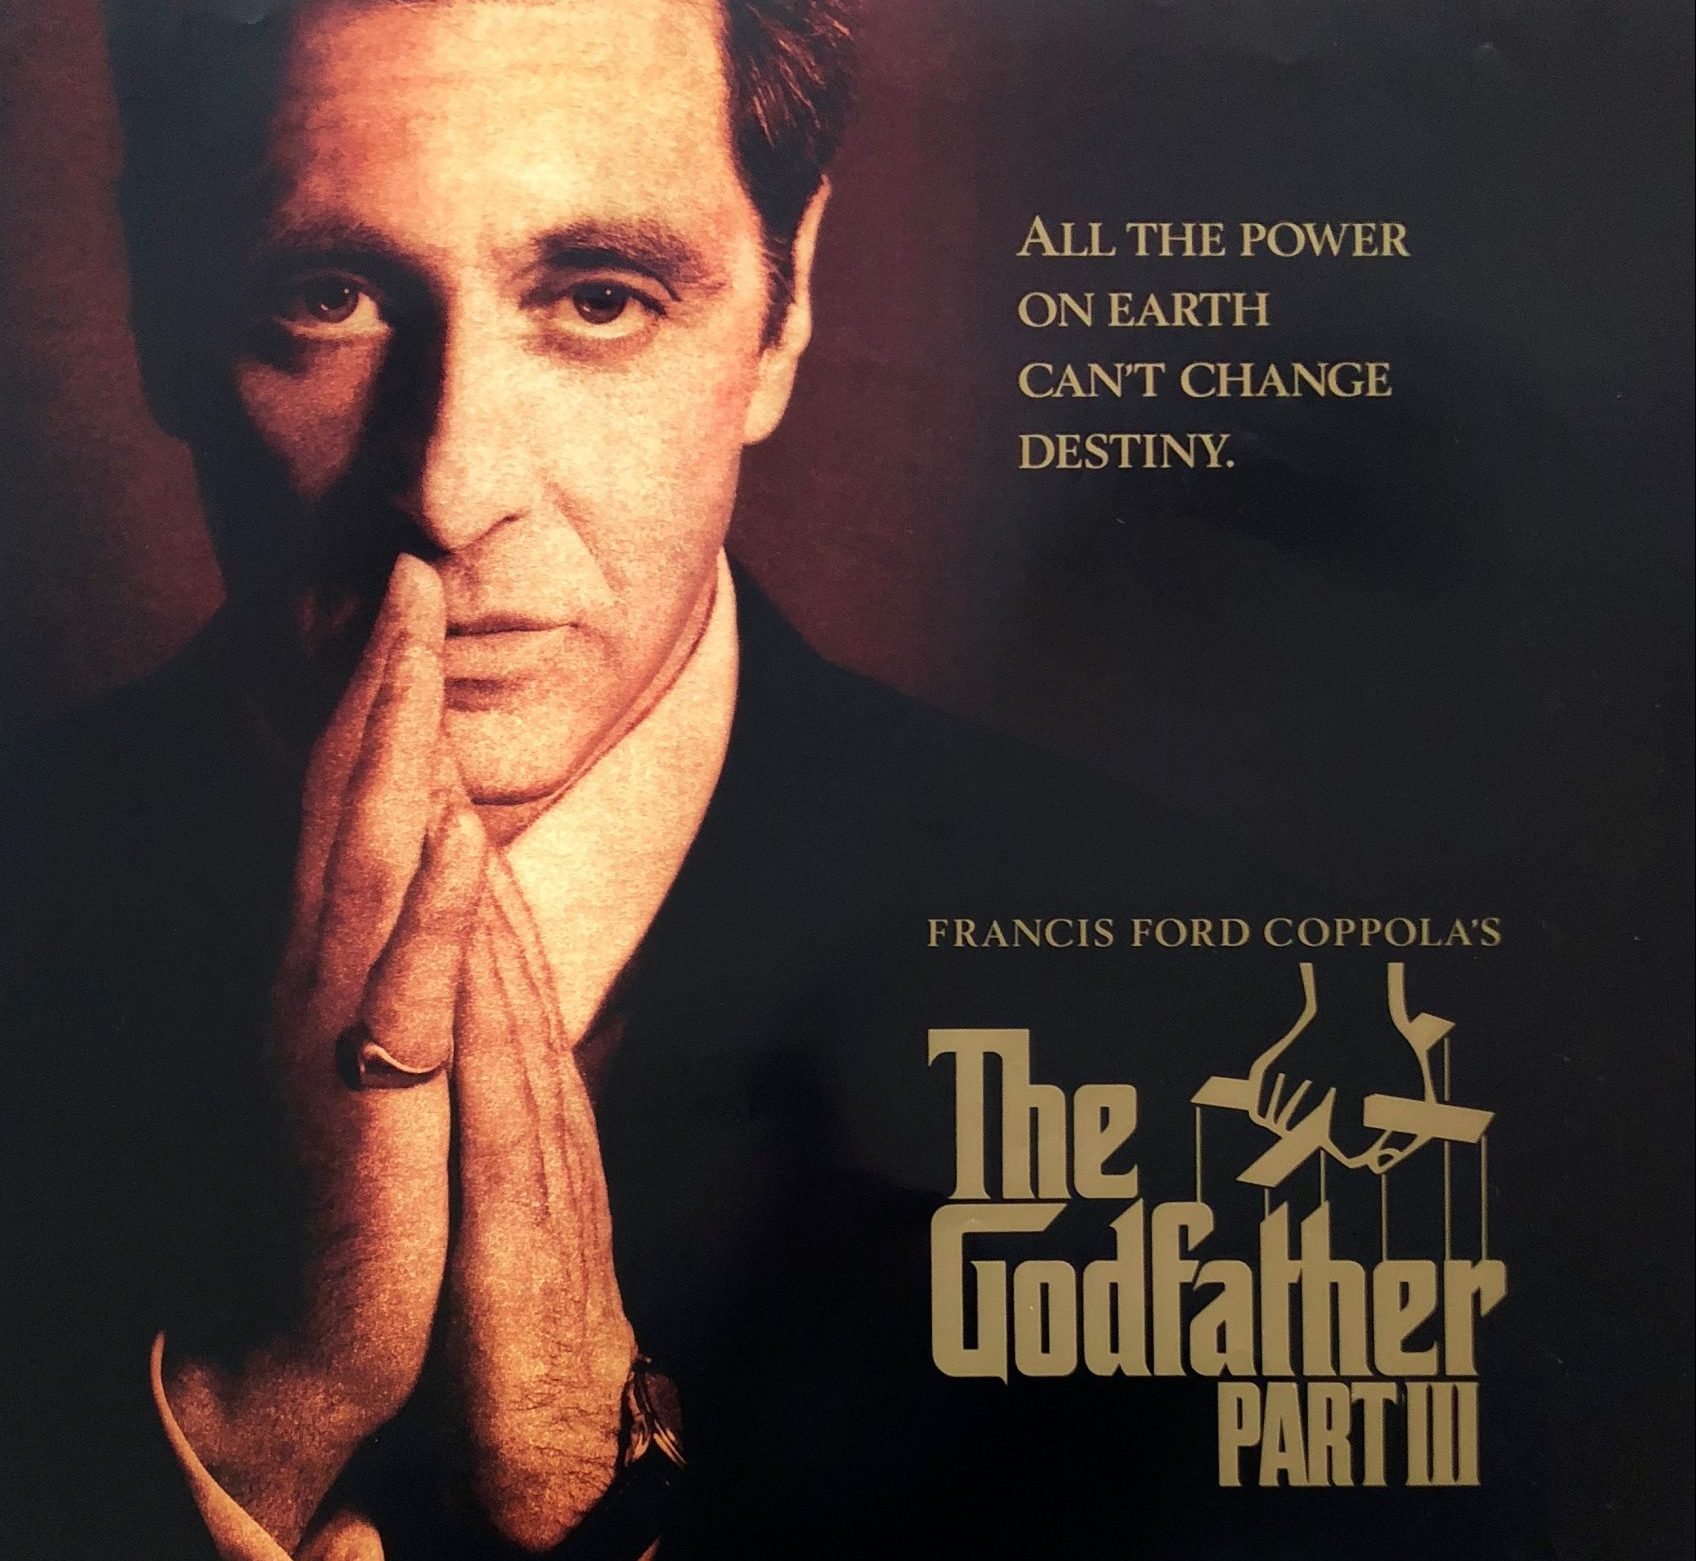 IMG 8932 scaled e1618394065874 20 Fascinating Facts About The Godfather You Can't Refuse